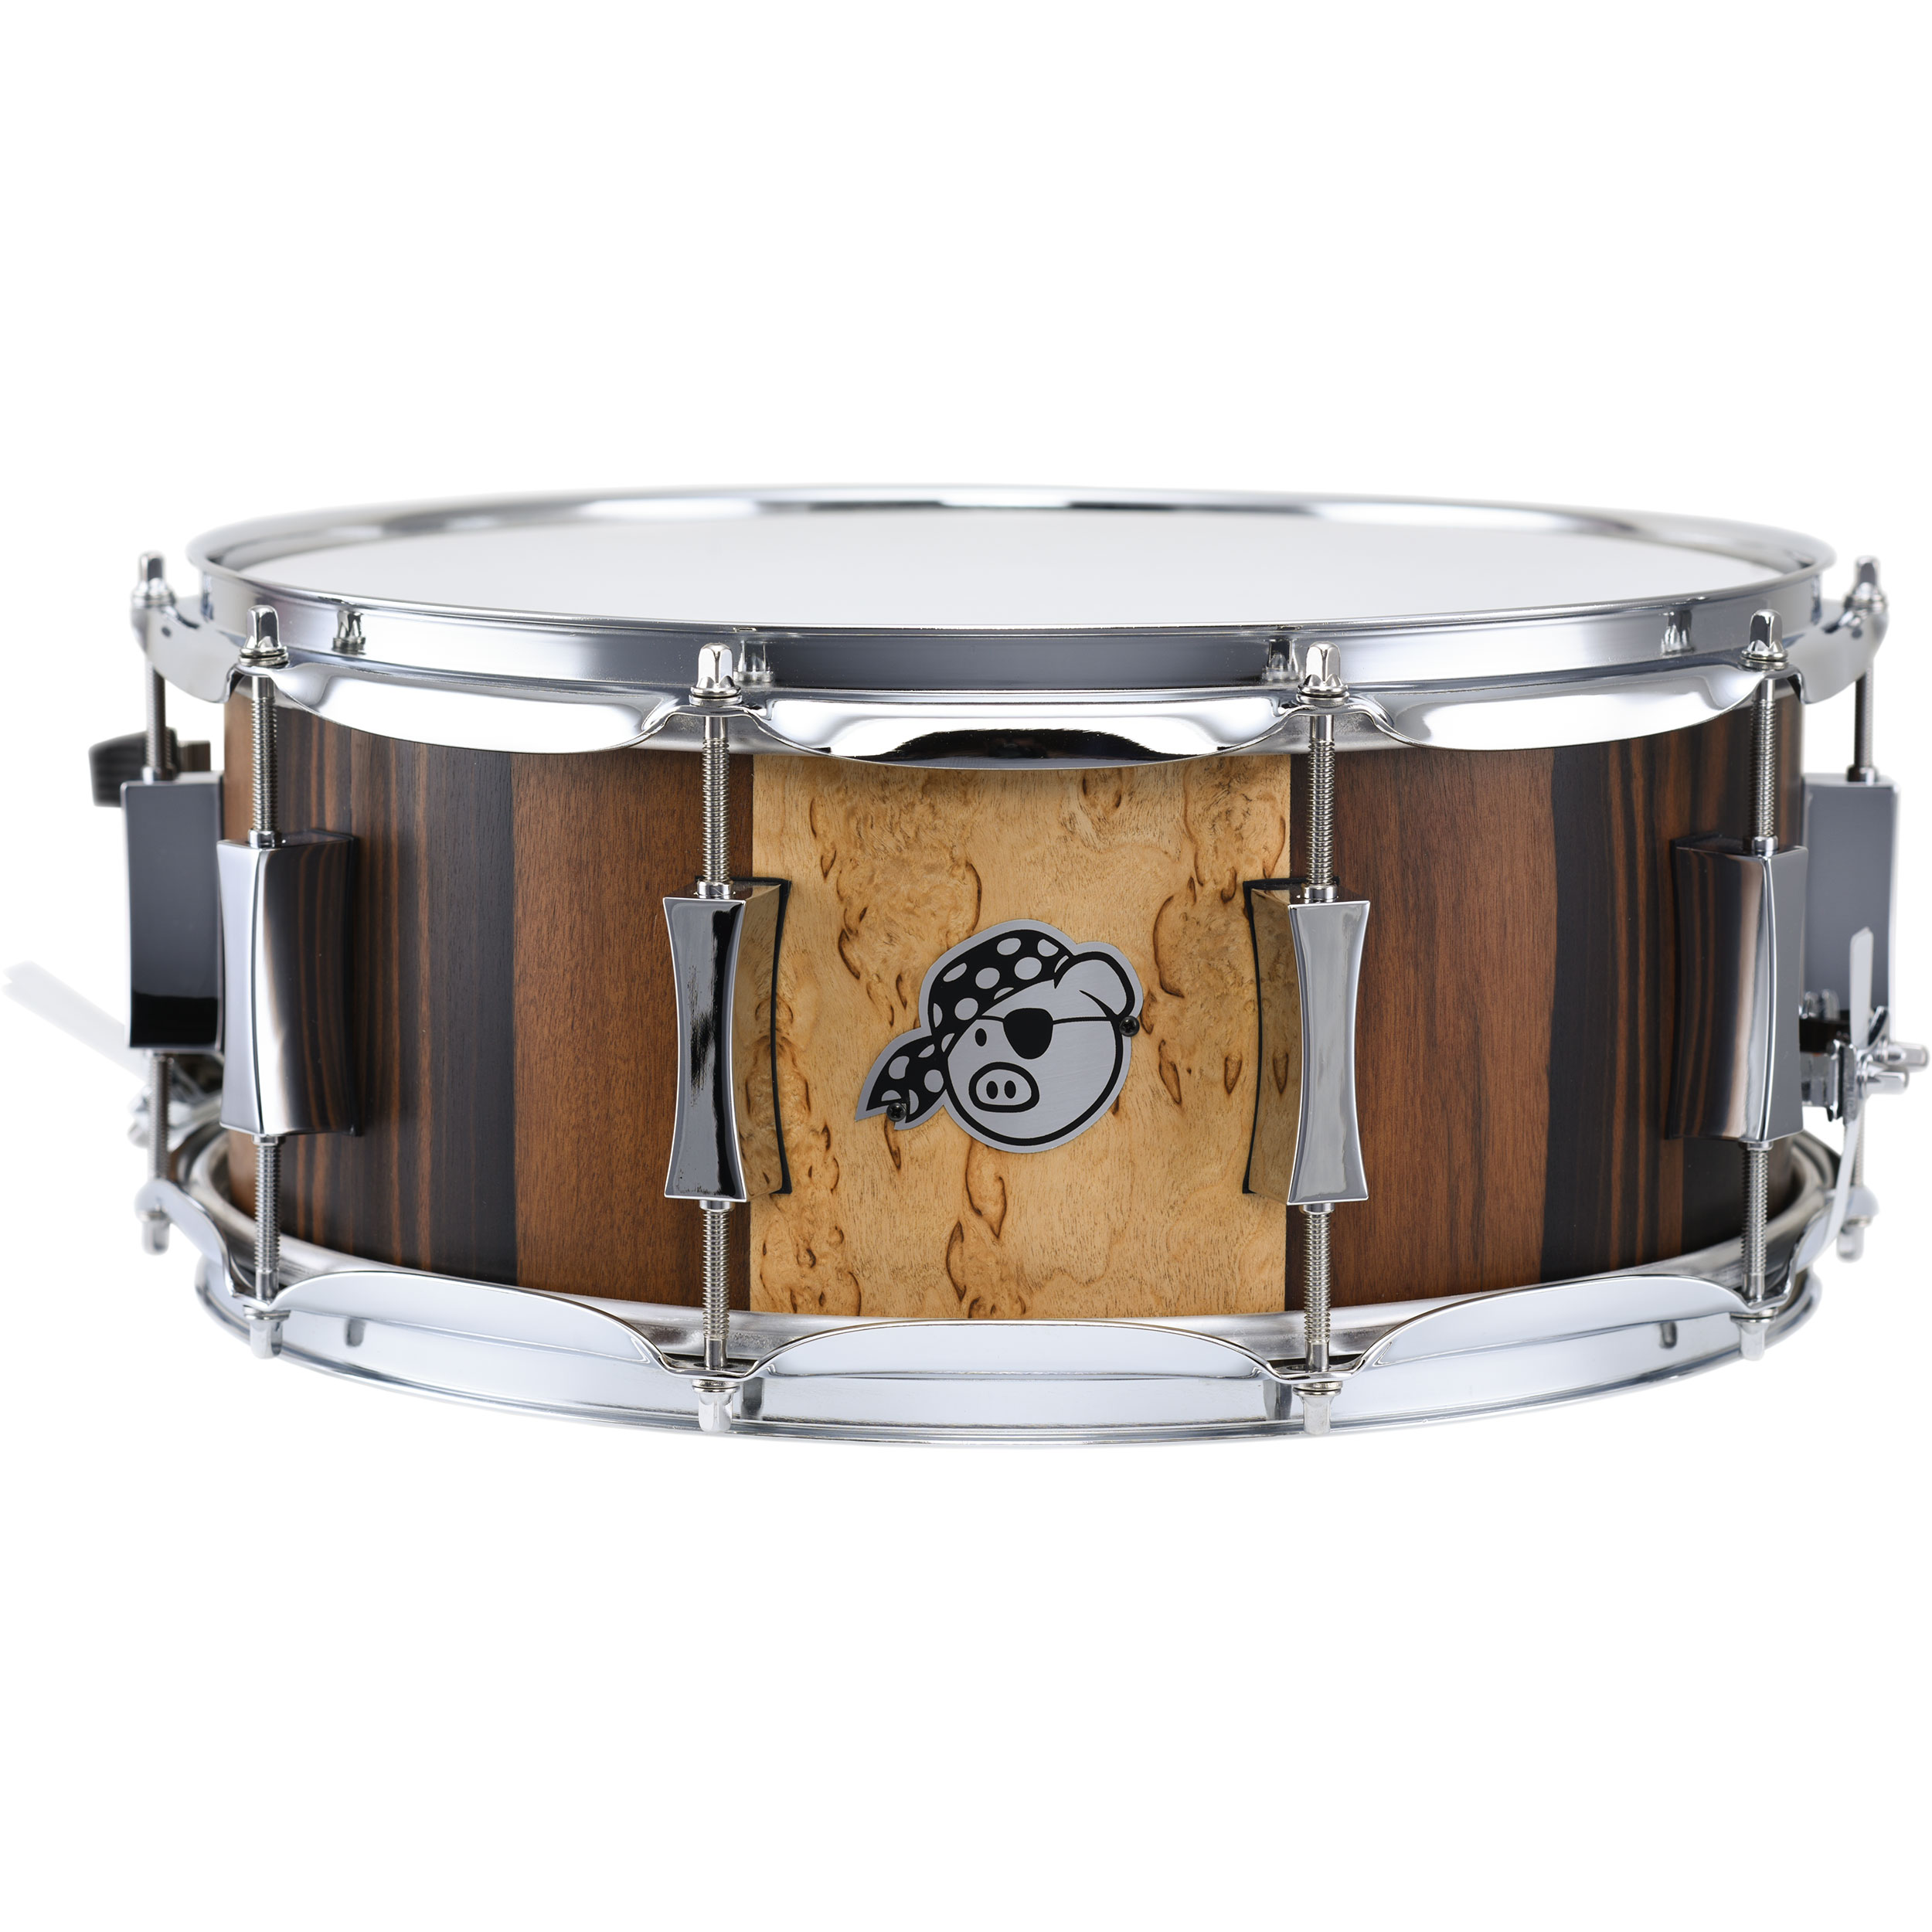 "Pork Pie Percussion 6.5"" x 14"" Maple/Mahogany Snare Drum with Macassar Ebony/Massur Birch Badge Panel in Satin Finish"